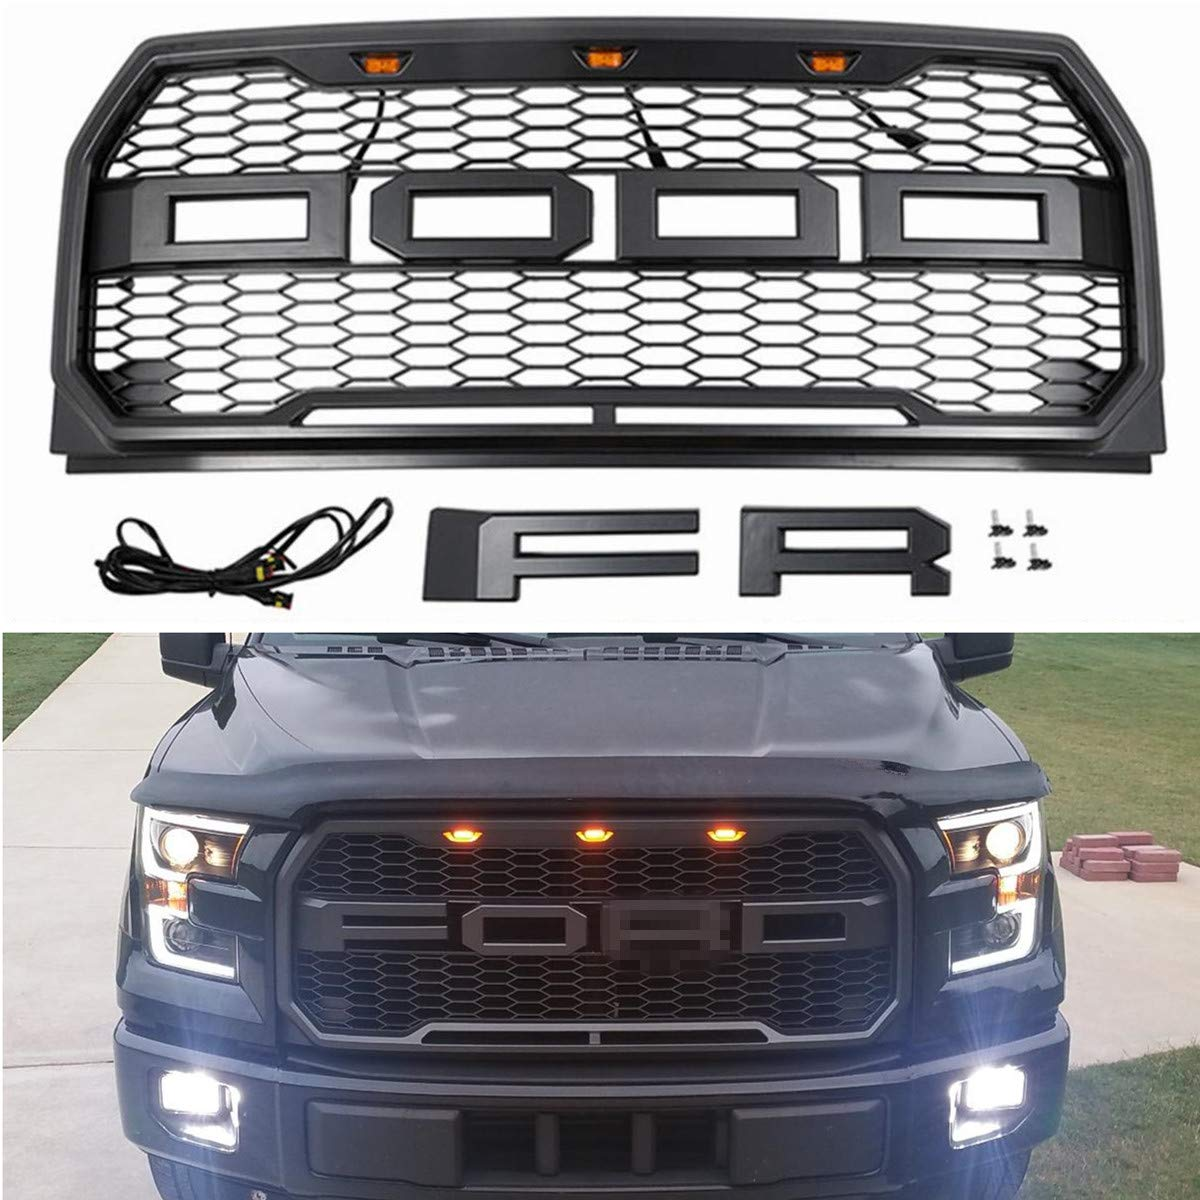 Seven Sparta Front Grill for F150 (15-17/gray)